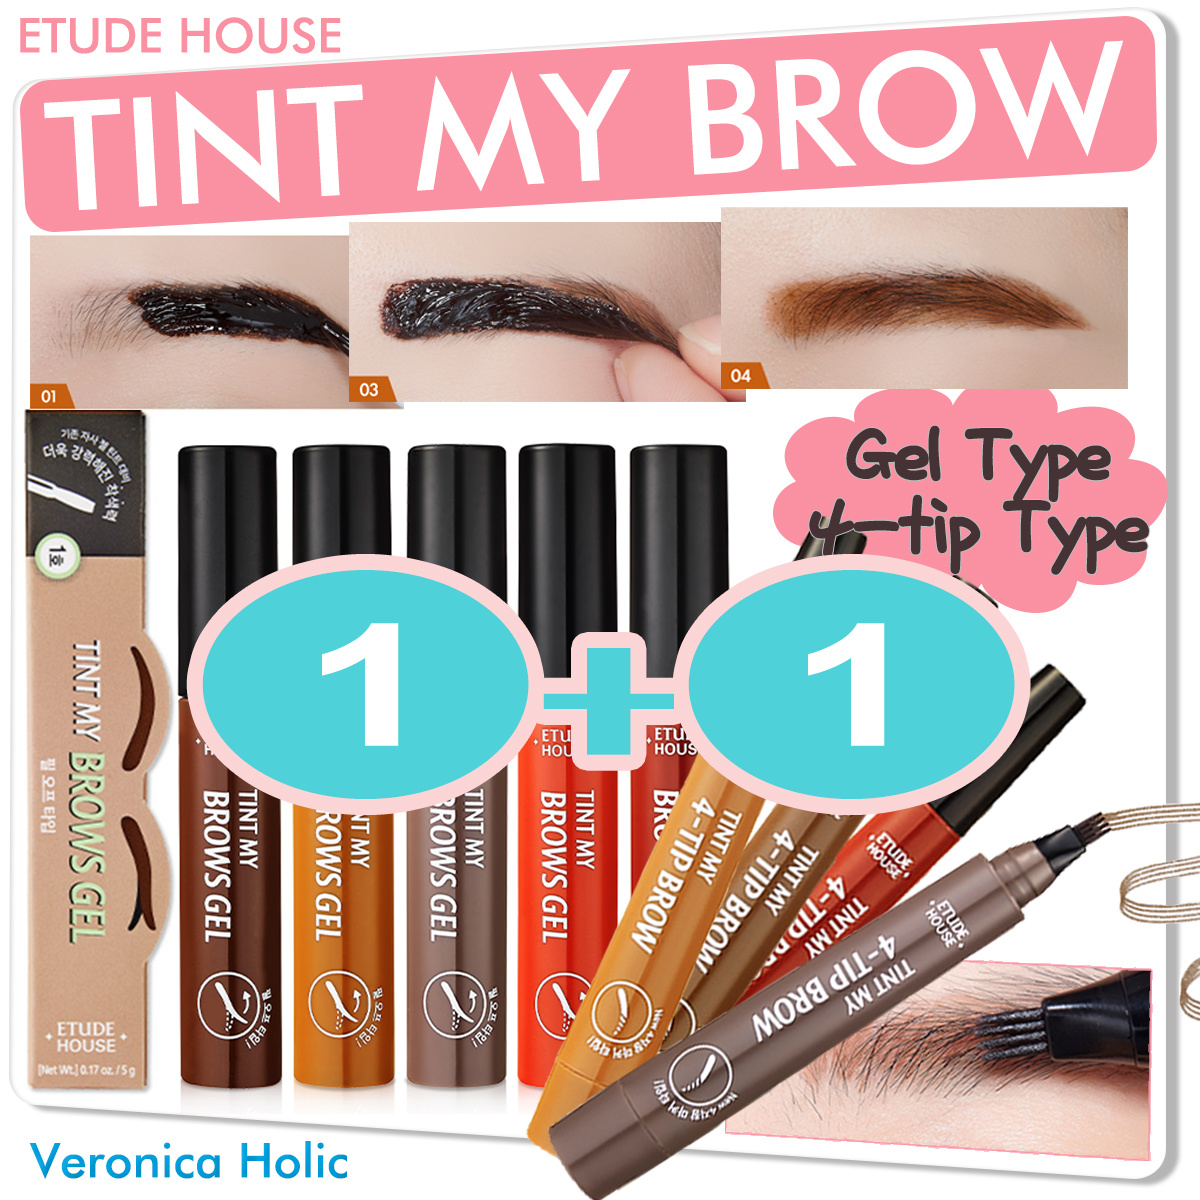 Qoo10 Etude House Brow Cosmetics Drawing Eyebrow New Buy 1 Get Fit To Viewer